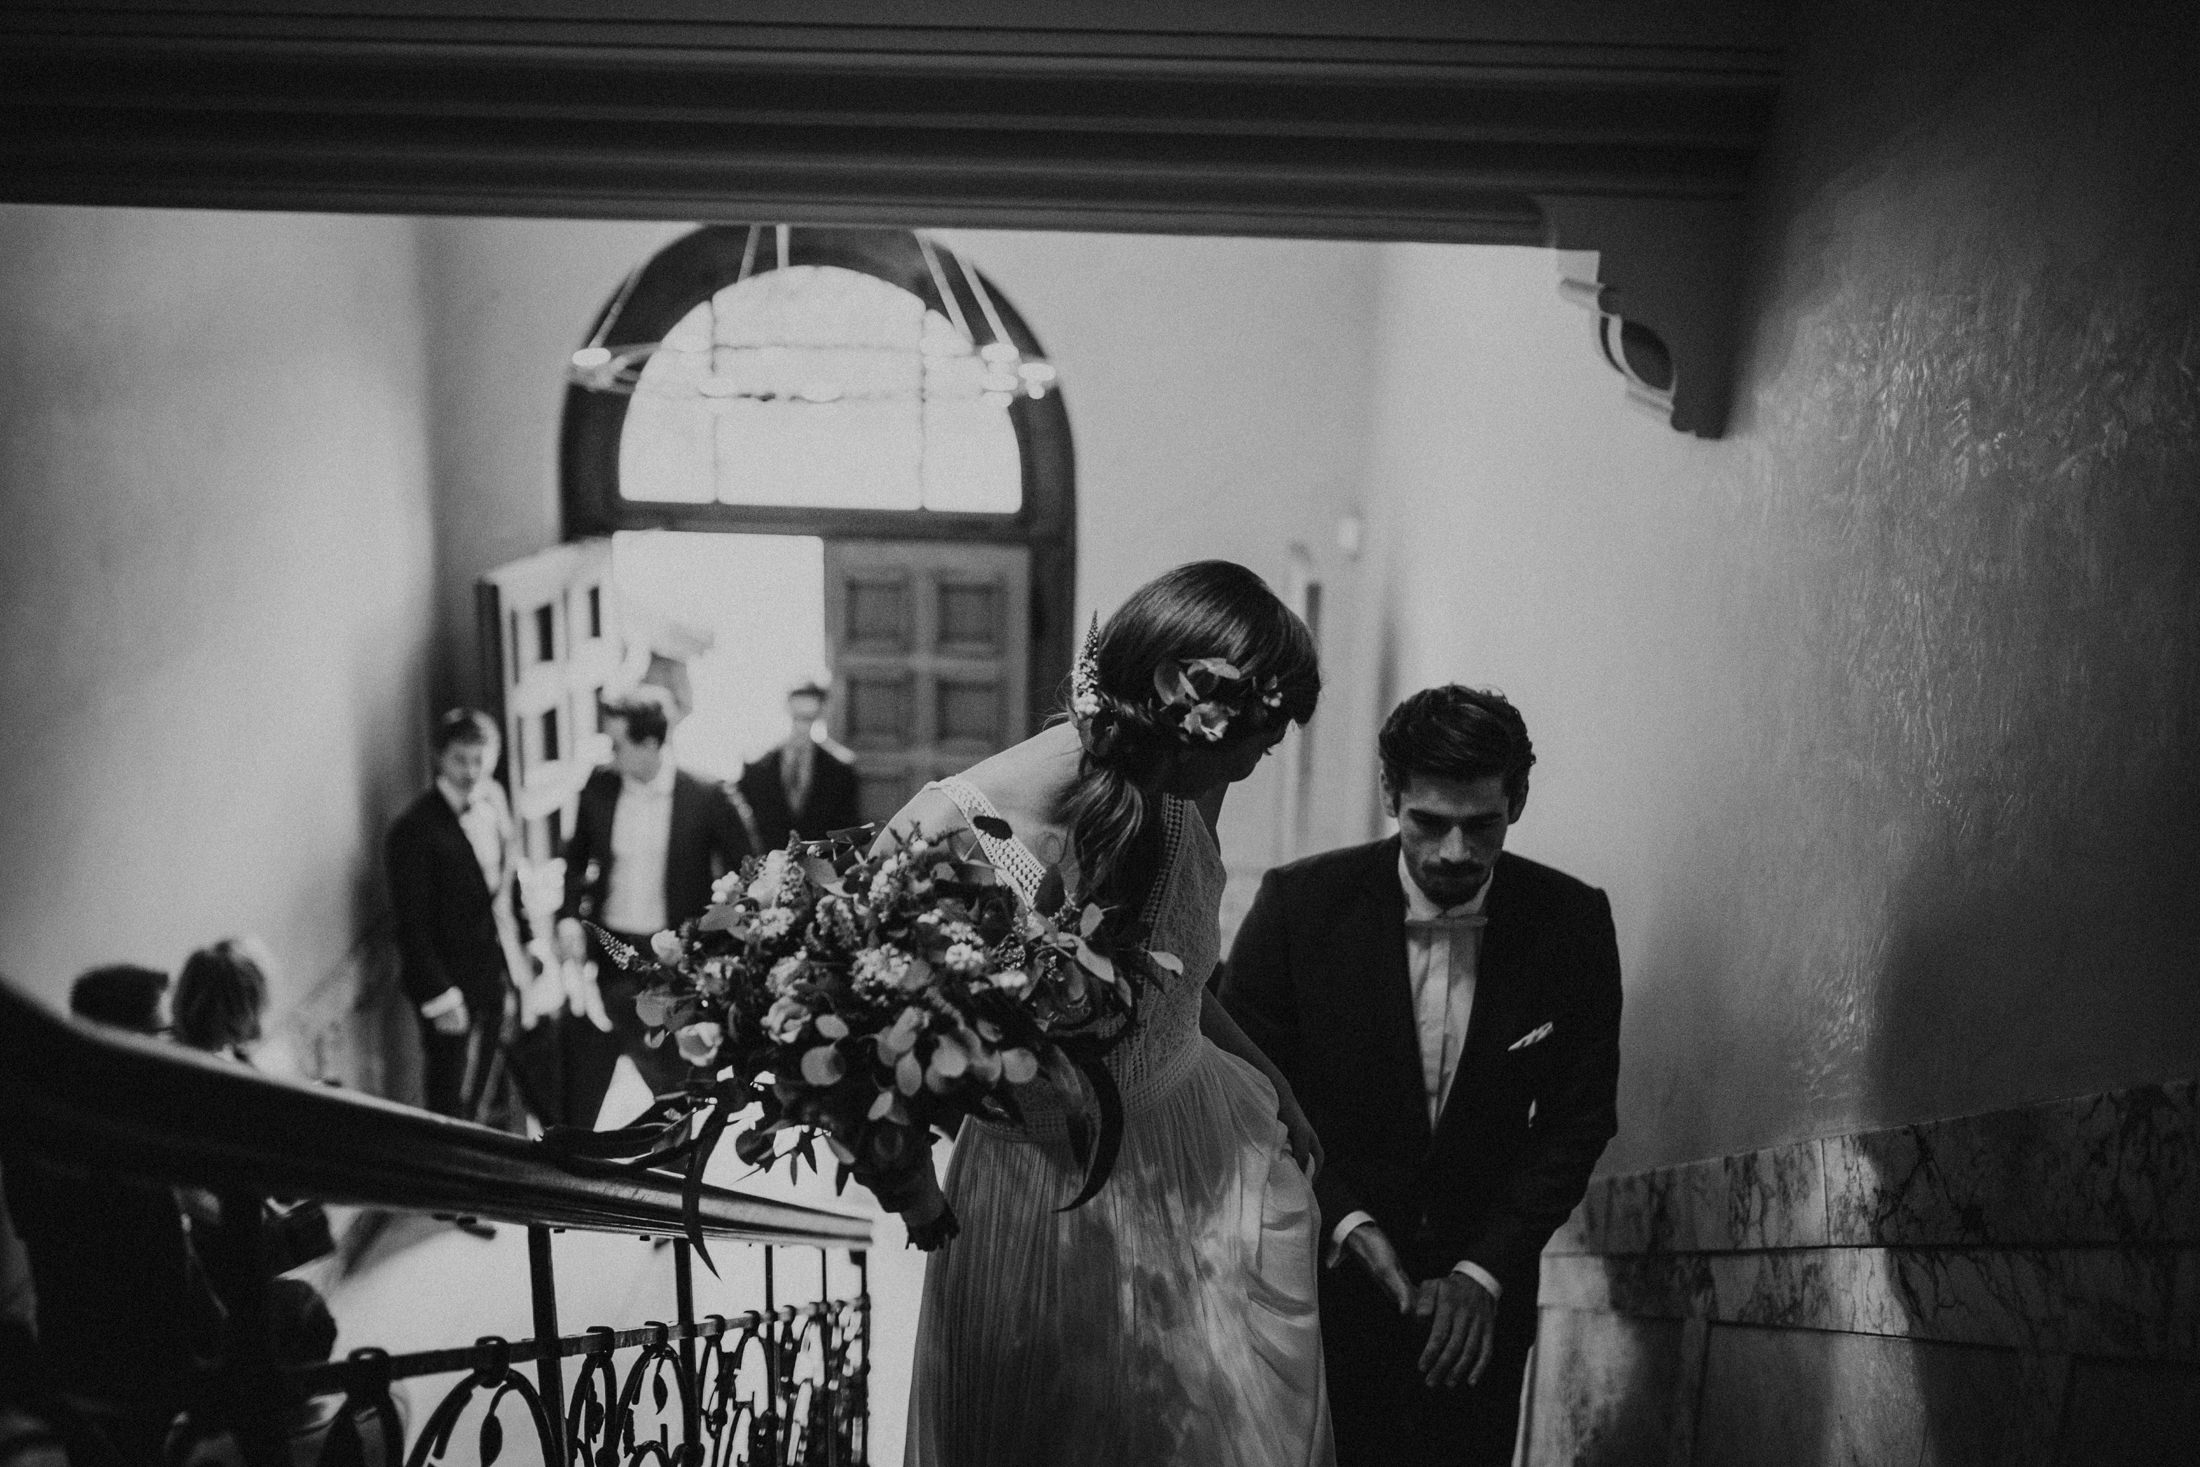 Wedding_Photographer_Mallorca_Daniela-Marquardt_Photography_Island_Tuskany_Santorini_Portugal_Schweiz_Austria_Bayern_Elopement_Hochzeitsfotograf_Jenny_Sander_117